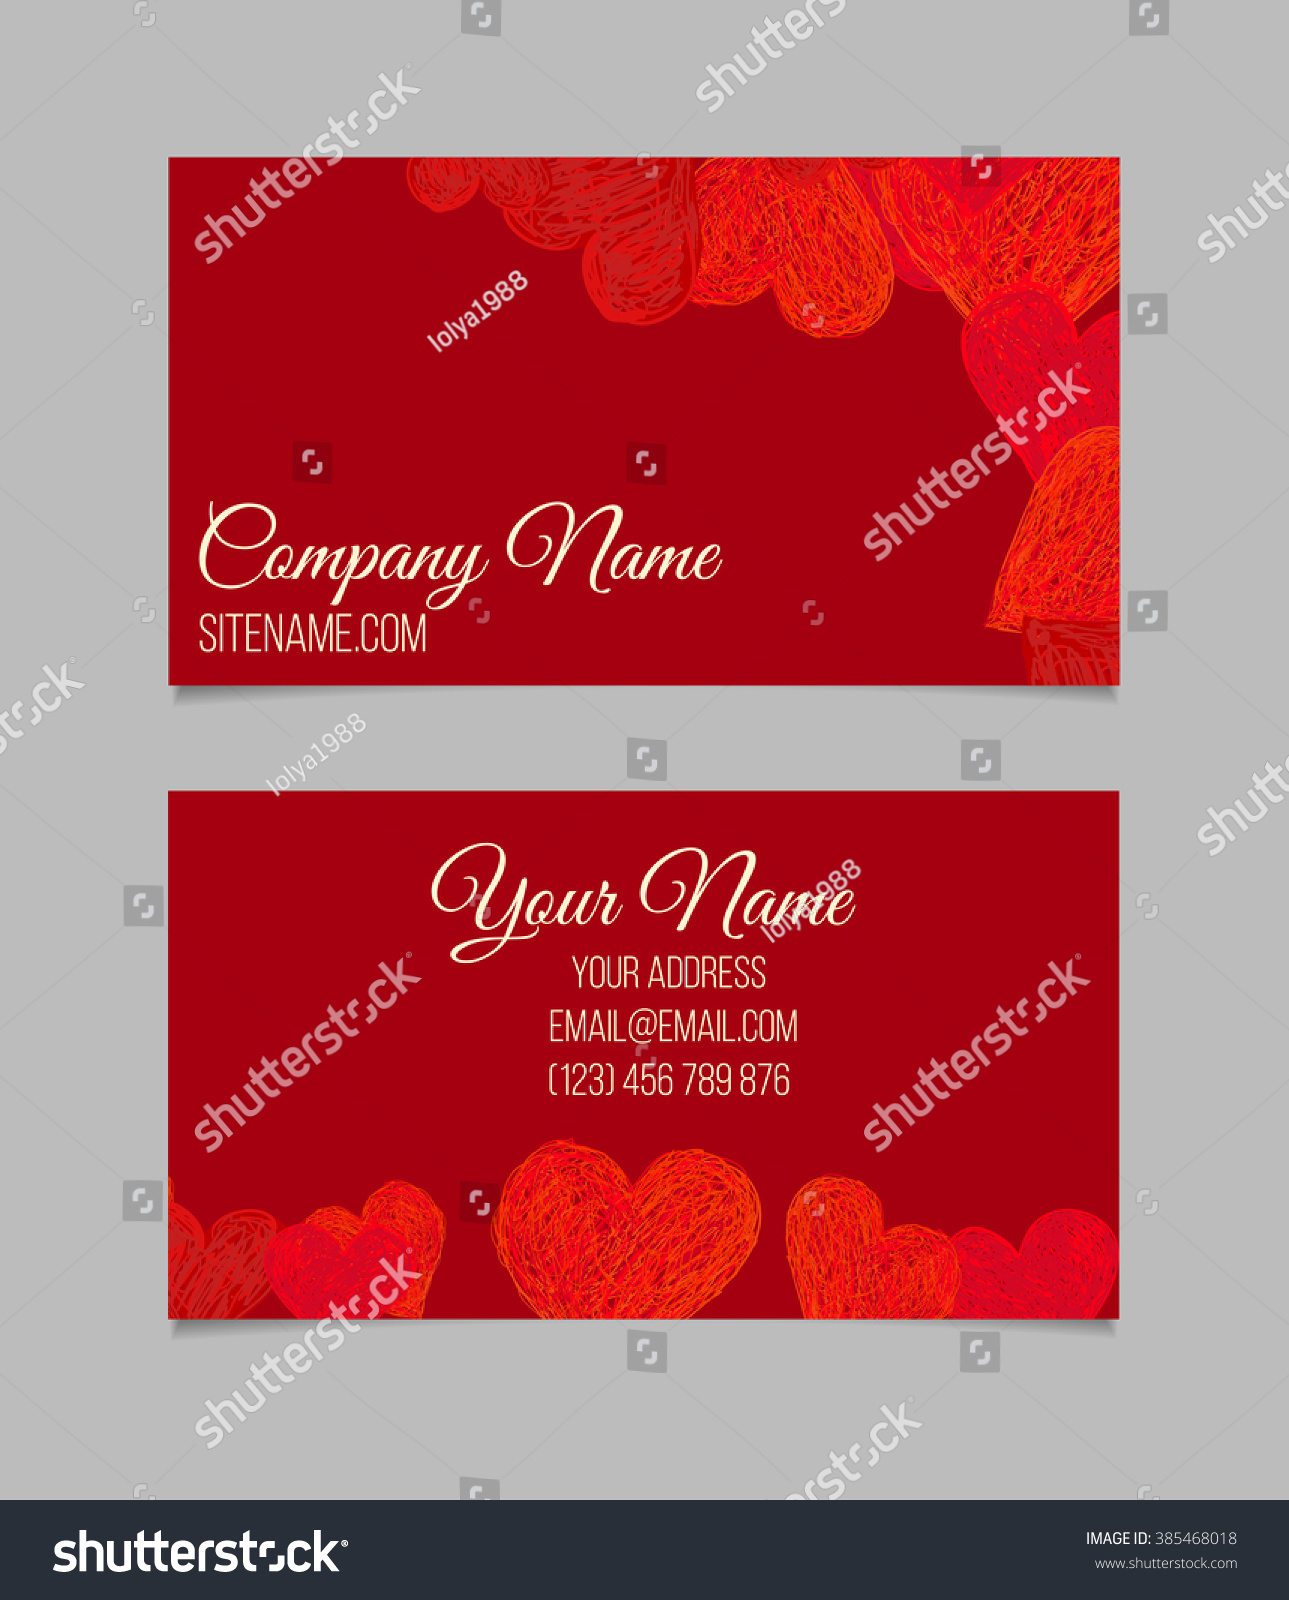 Business Card Template Doodle Heart Shapes Stock Vector 385468018 ...